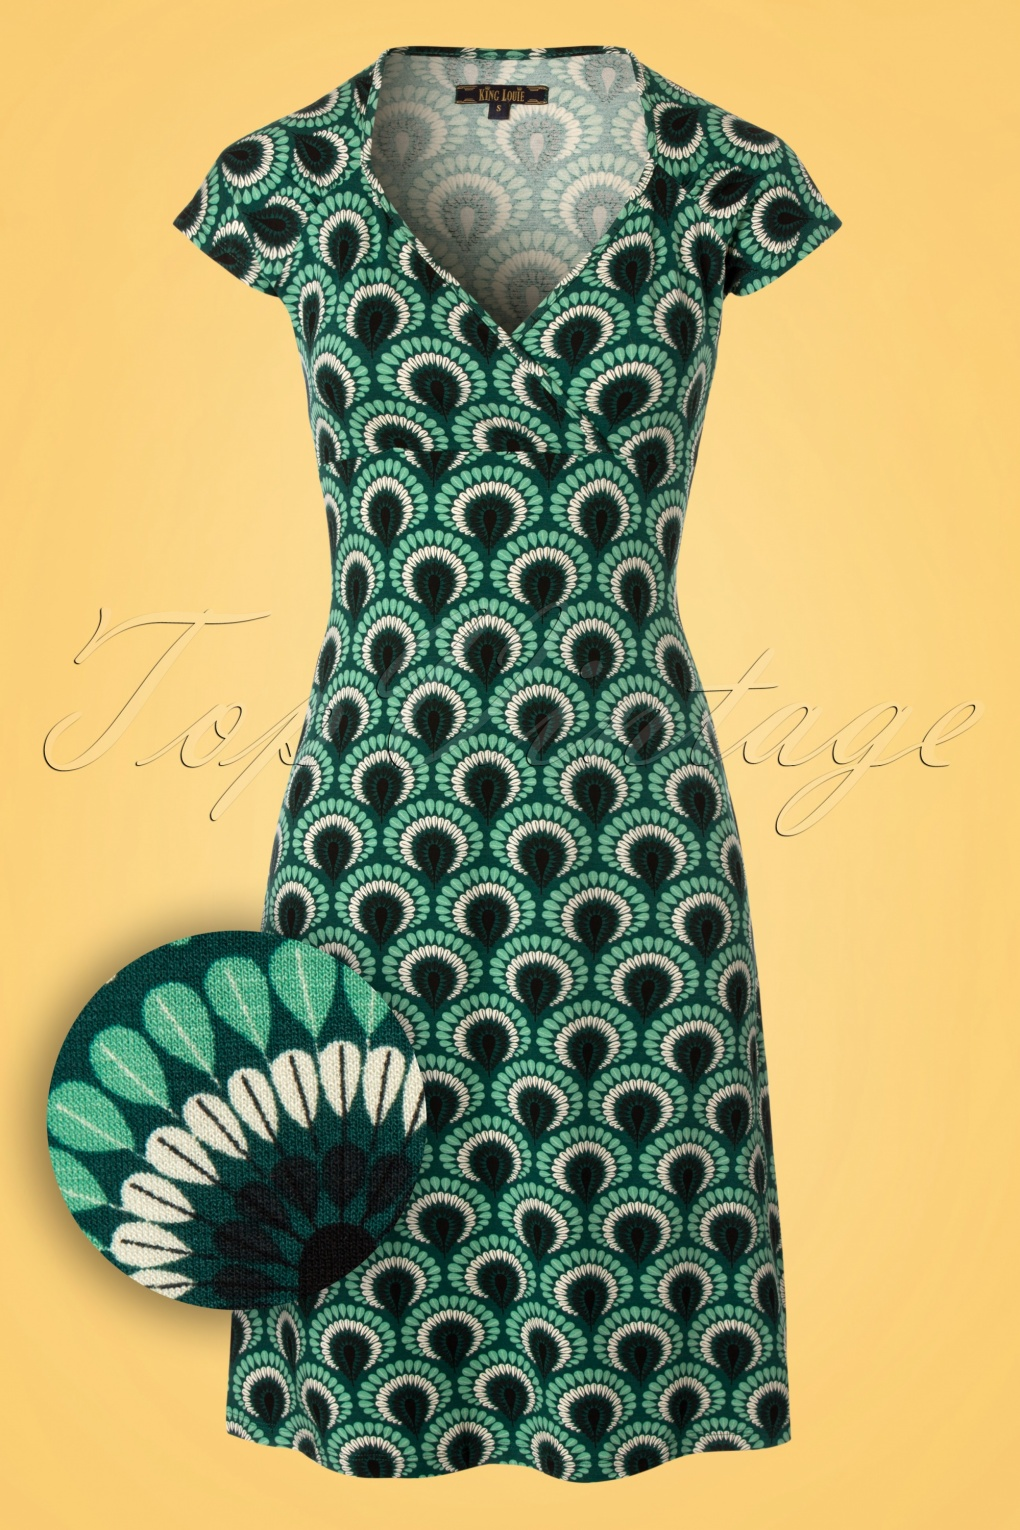 Plus Size Vintage Dresses, Plus Size Retro Dresses 60s Gina Peacock Dress in Rock Green £84.10 AT vintagedancer.com